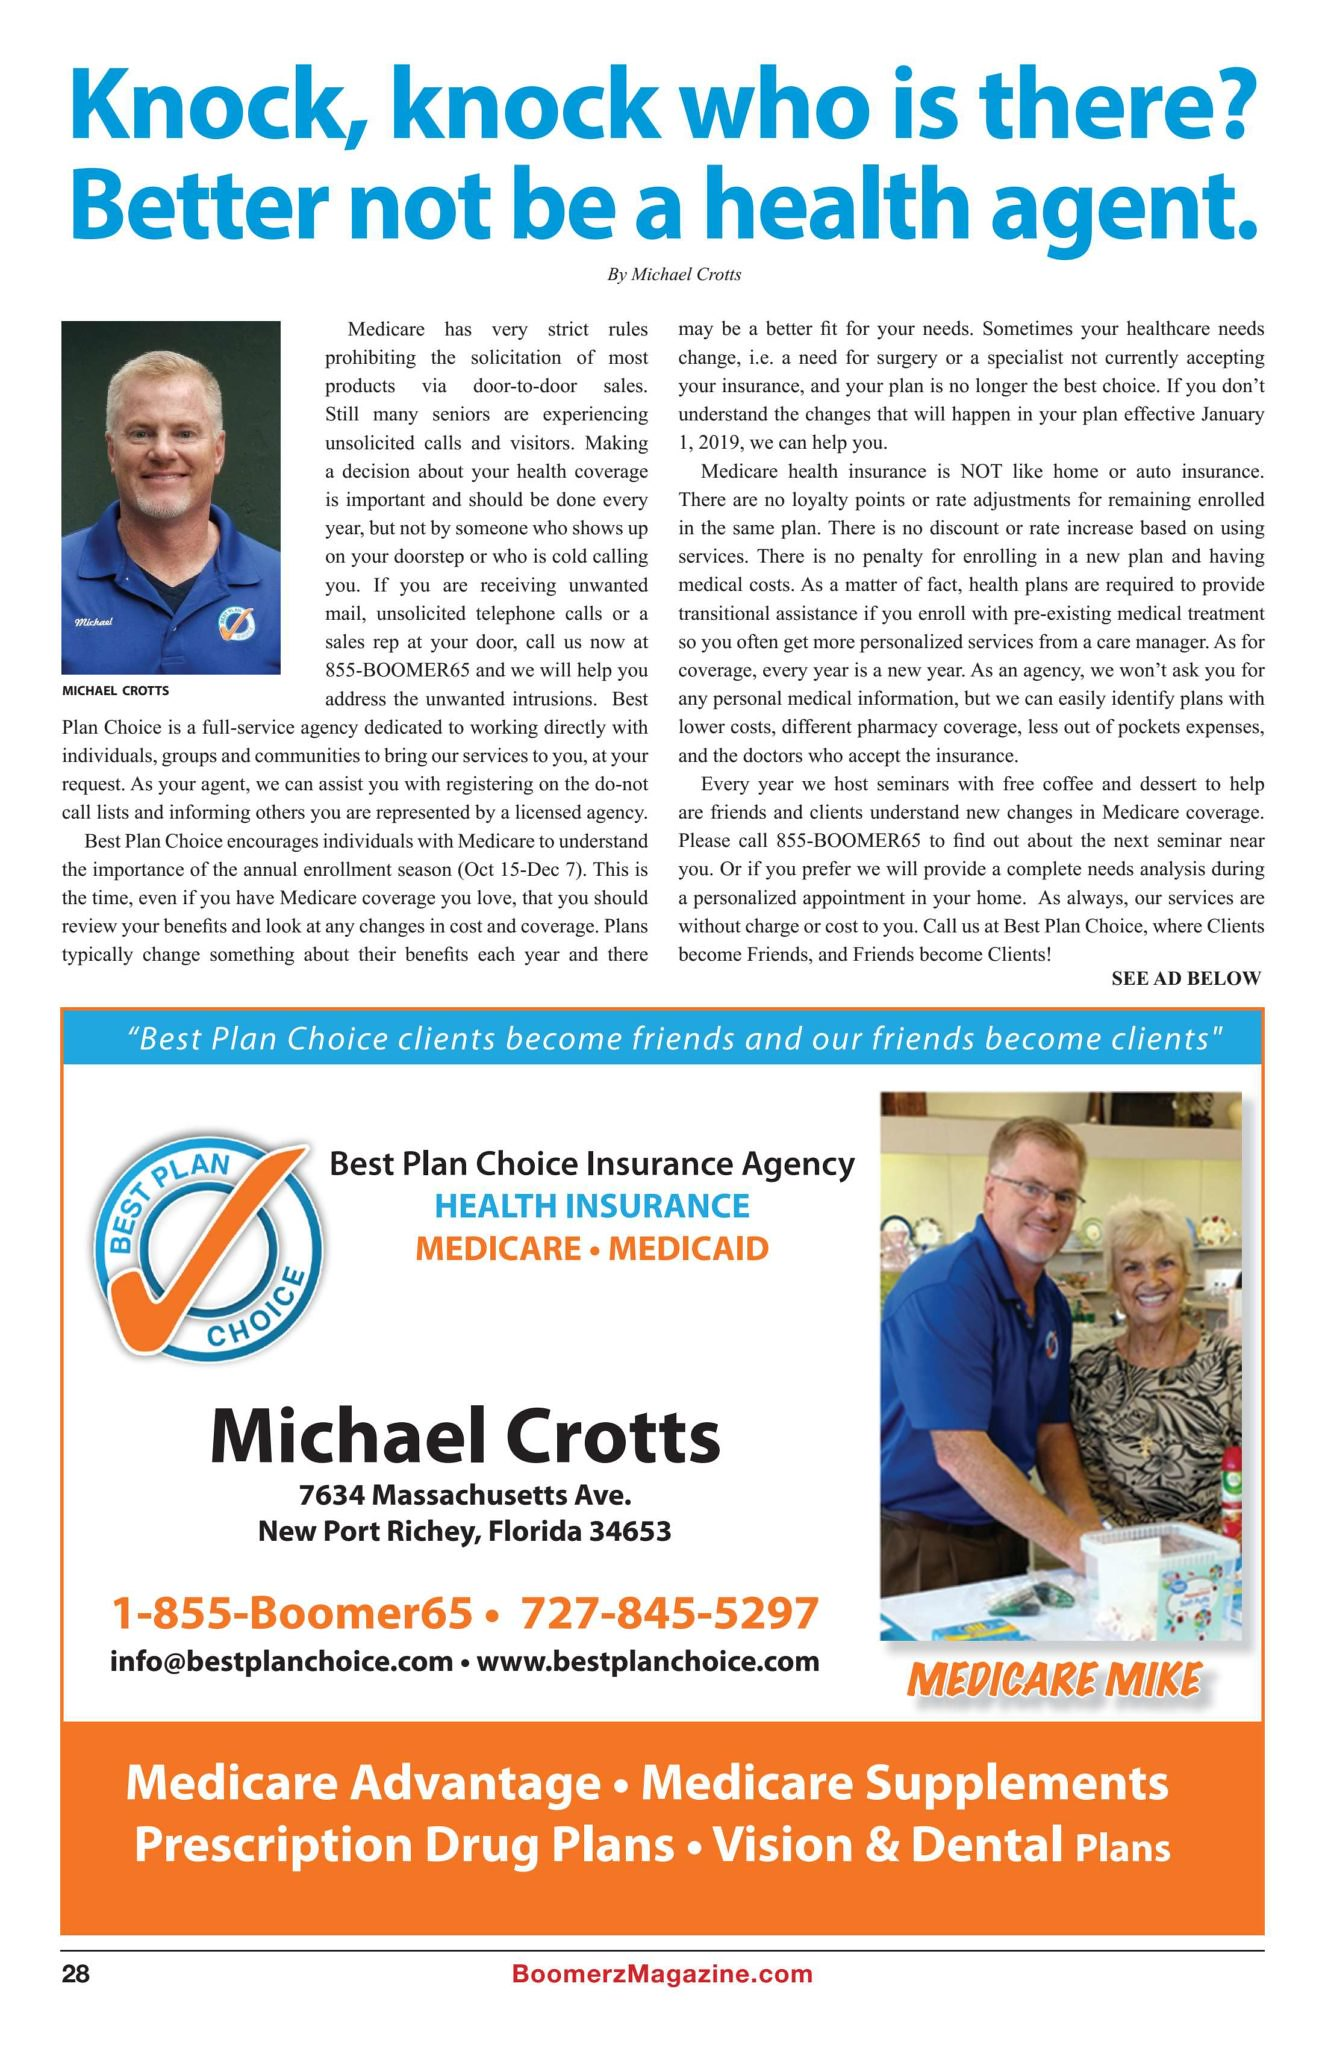 Boomerz Magazine 2018 November Best Plan Choice Insurance Agency Michael Crotts